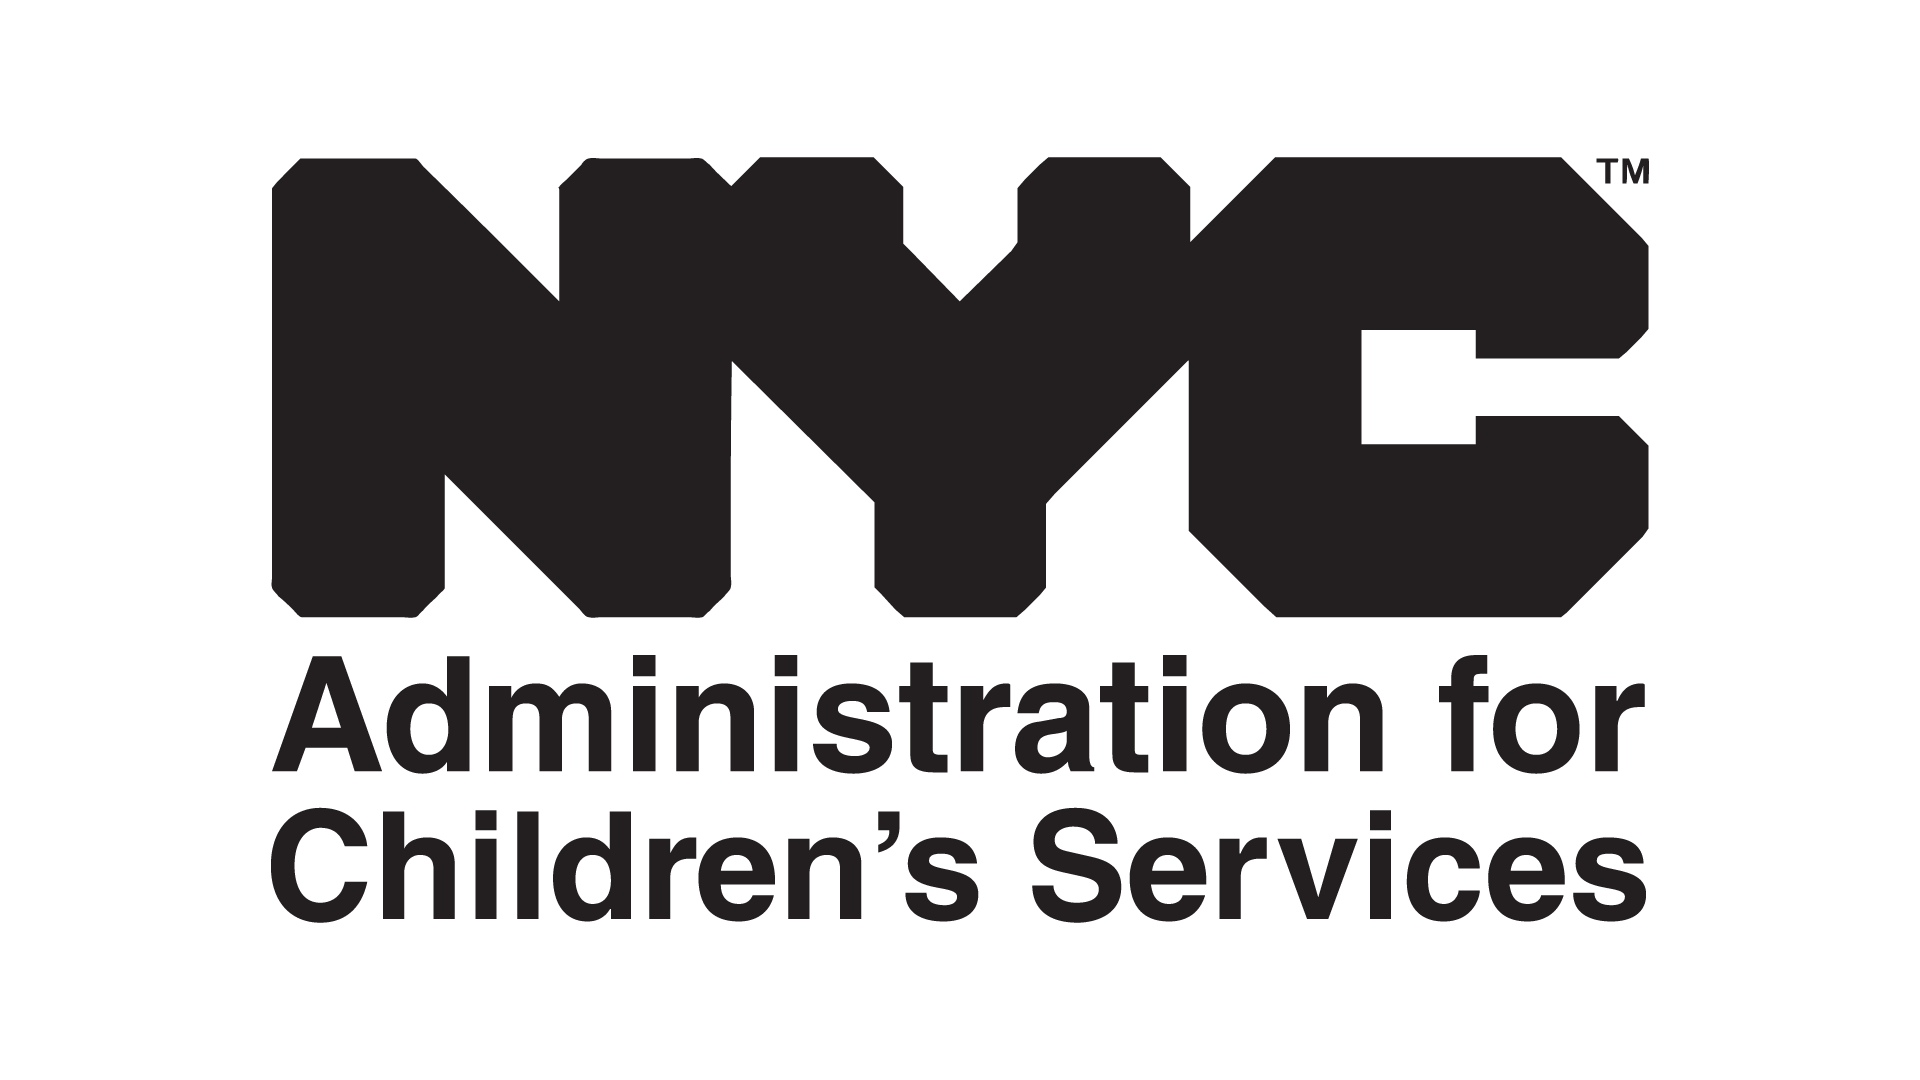 Copy of YC Administration for Children's Services